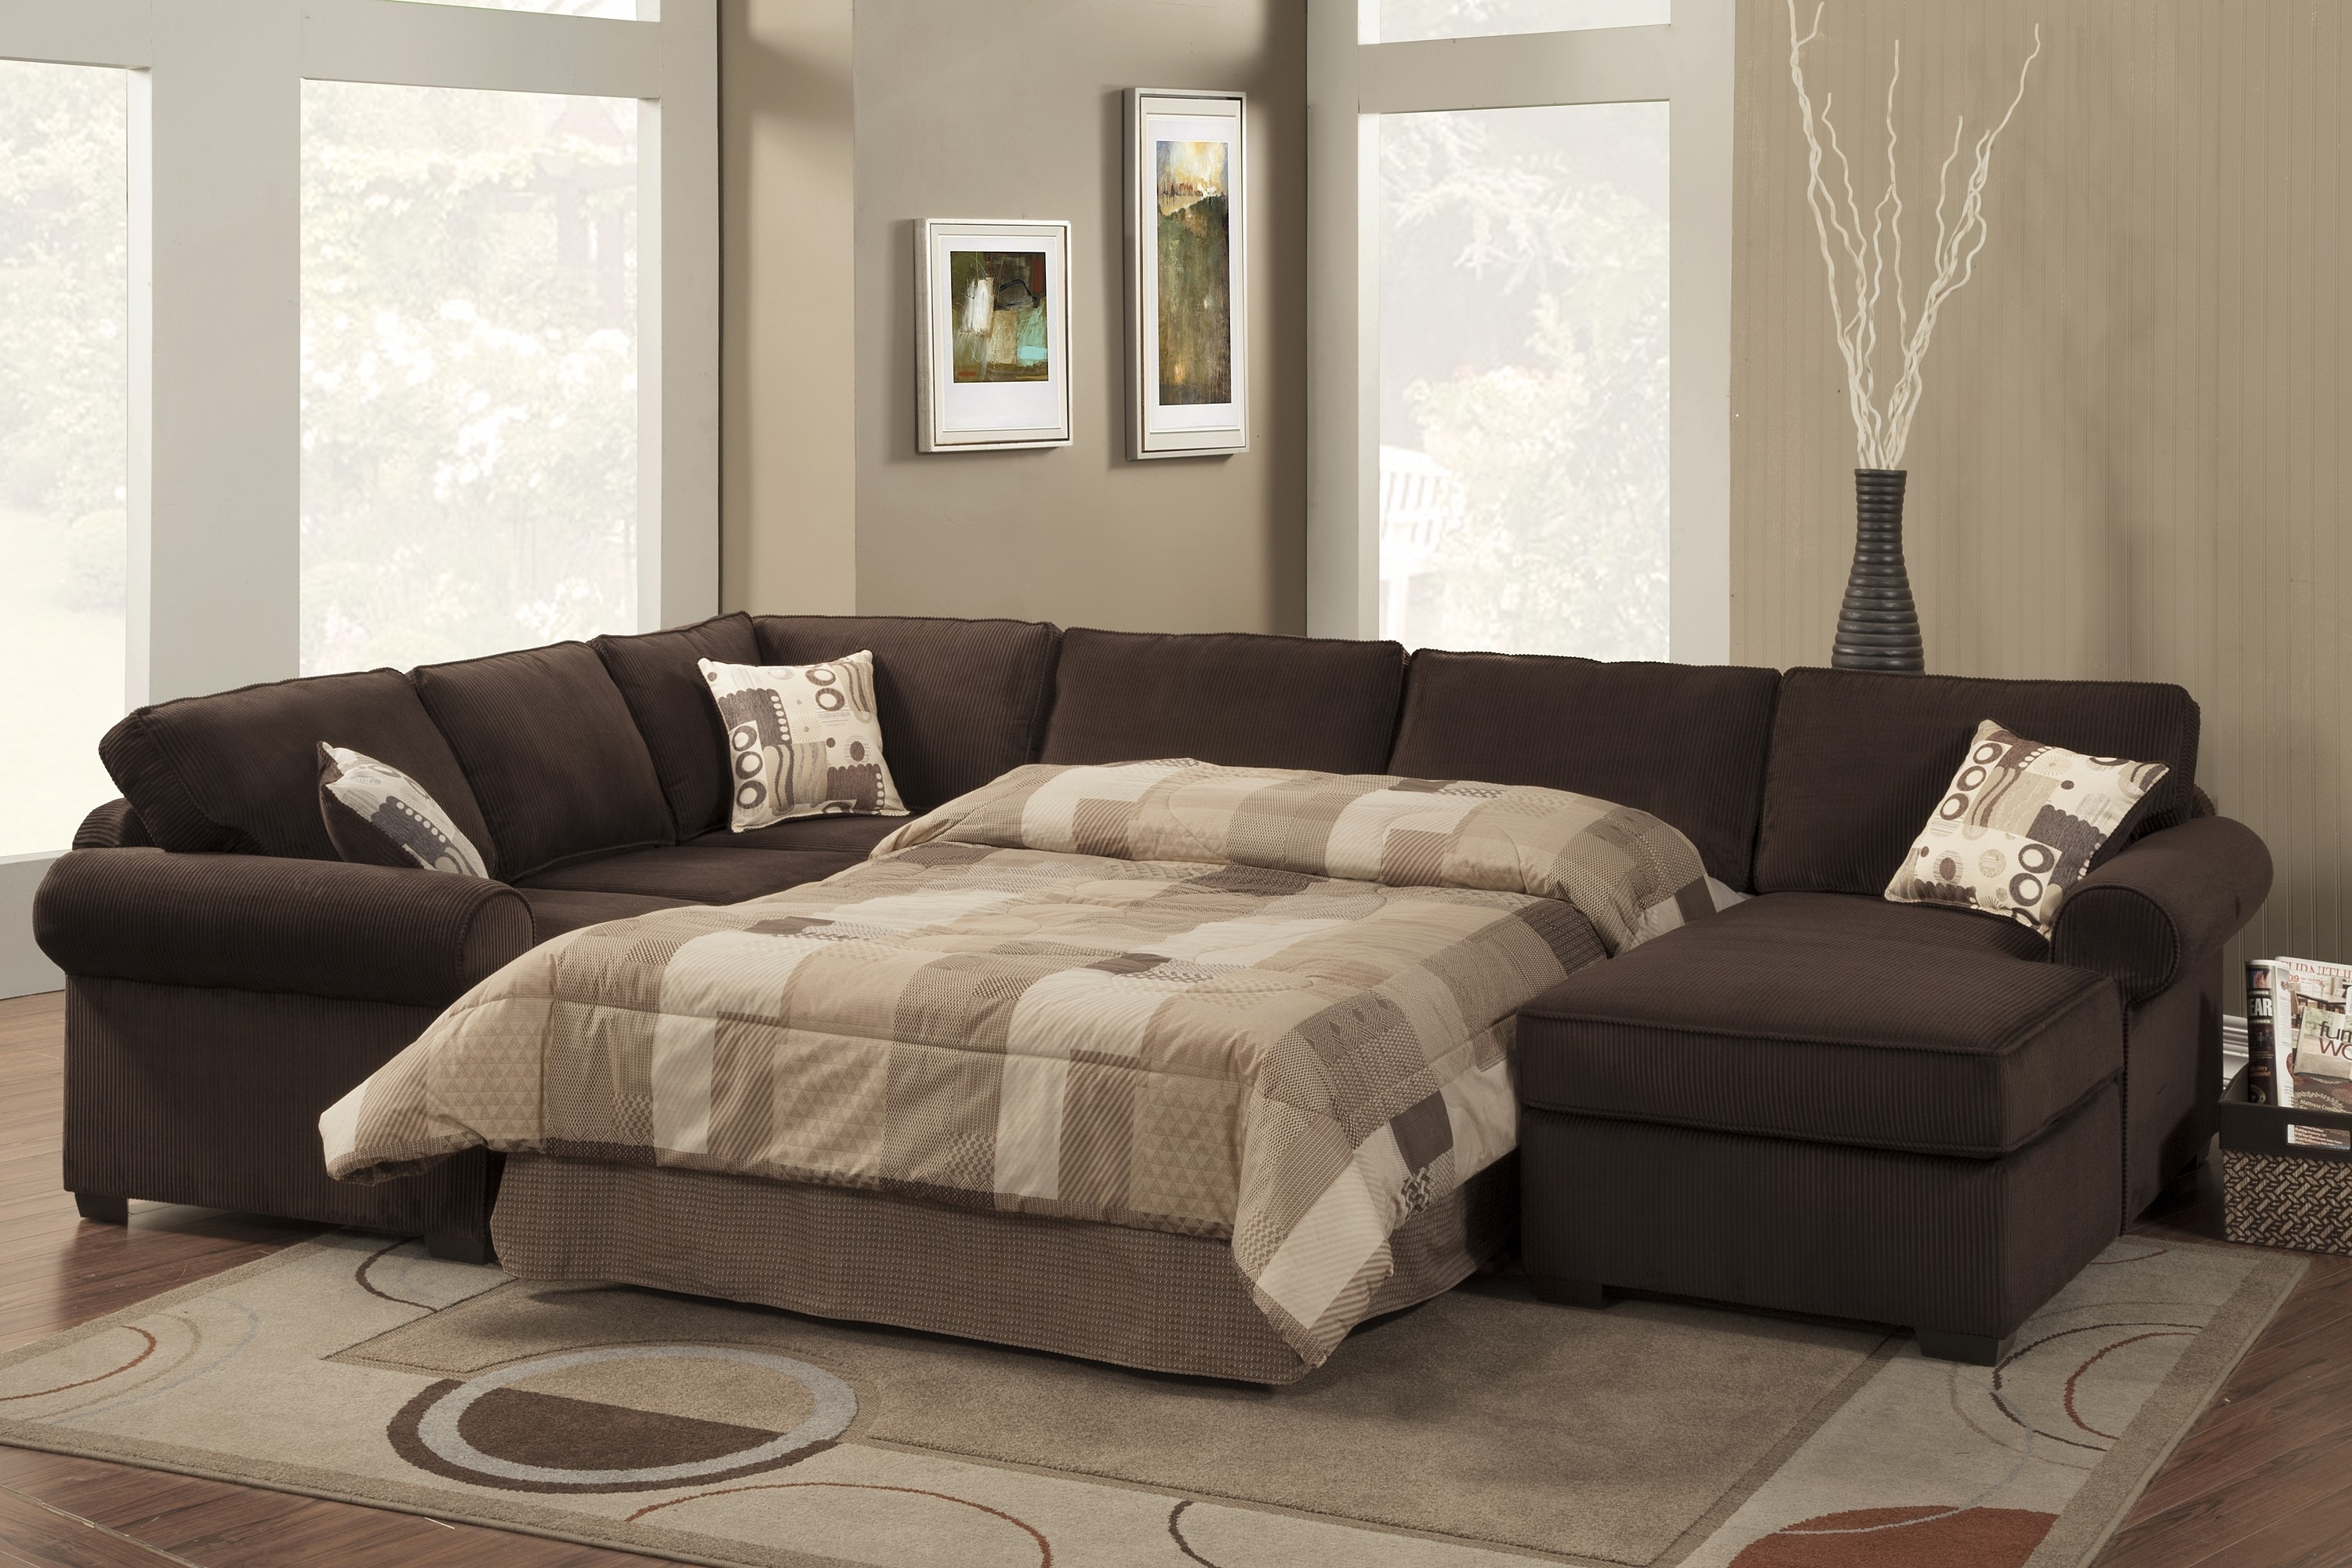 Extraordinary Sleeper Sofa Sectional Alluring Home Design for Sectional Sofas With Queen Size Sleeper (Image 3 of 10)